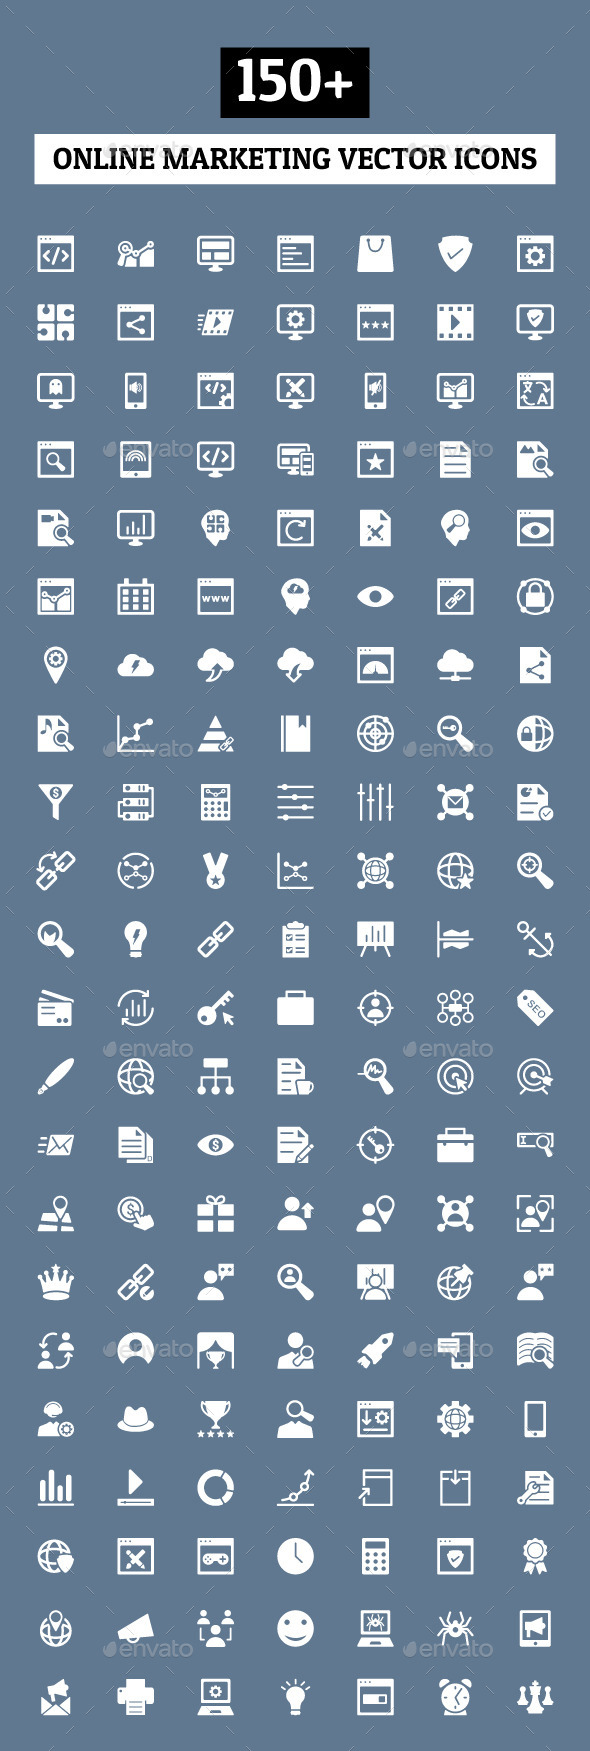 150+ Online Marketing Icons - Web Icons